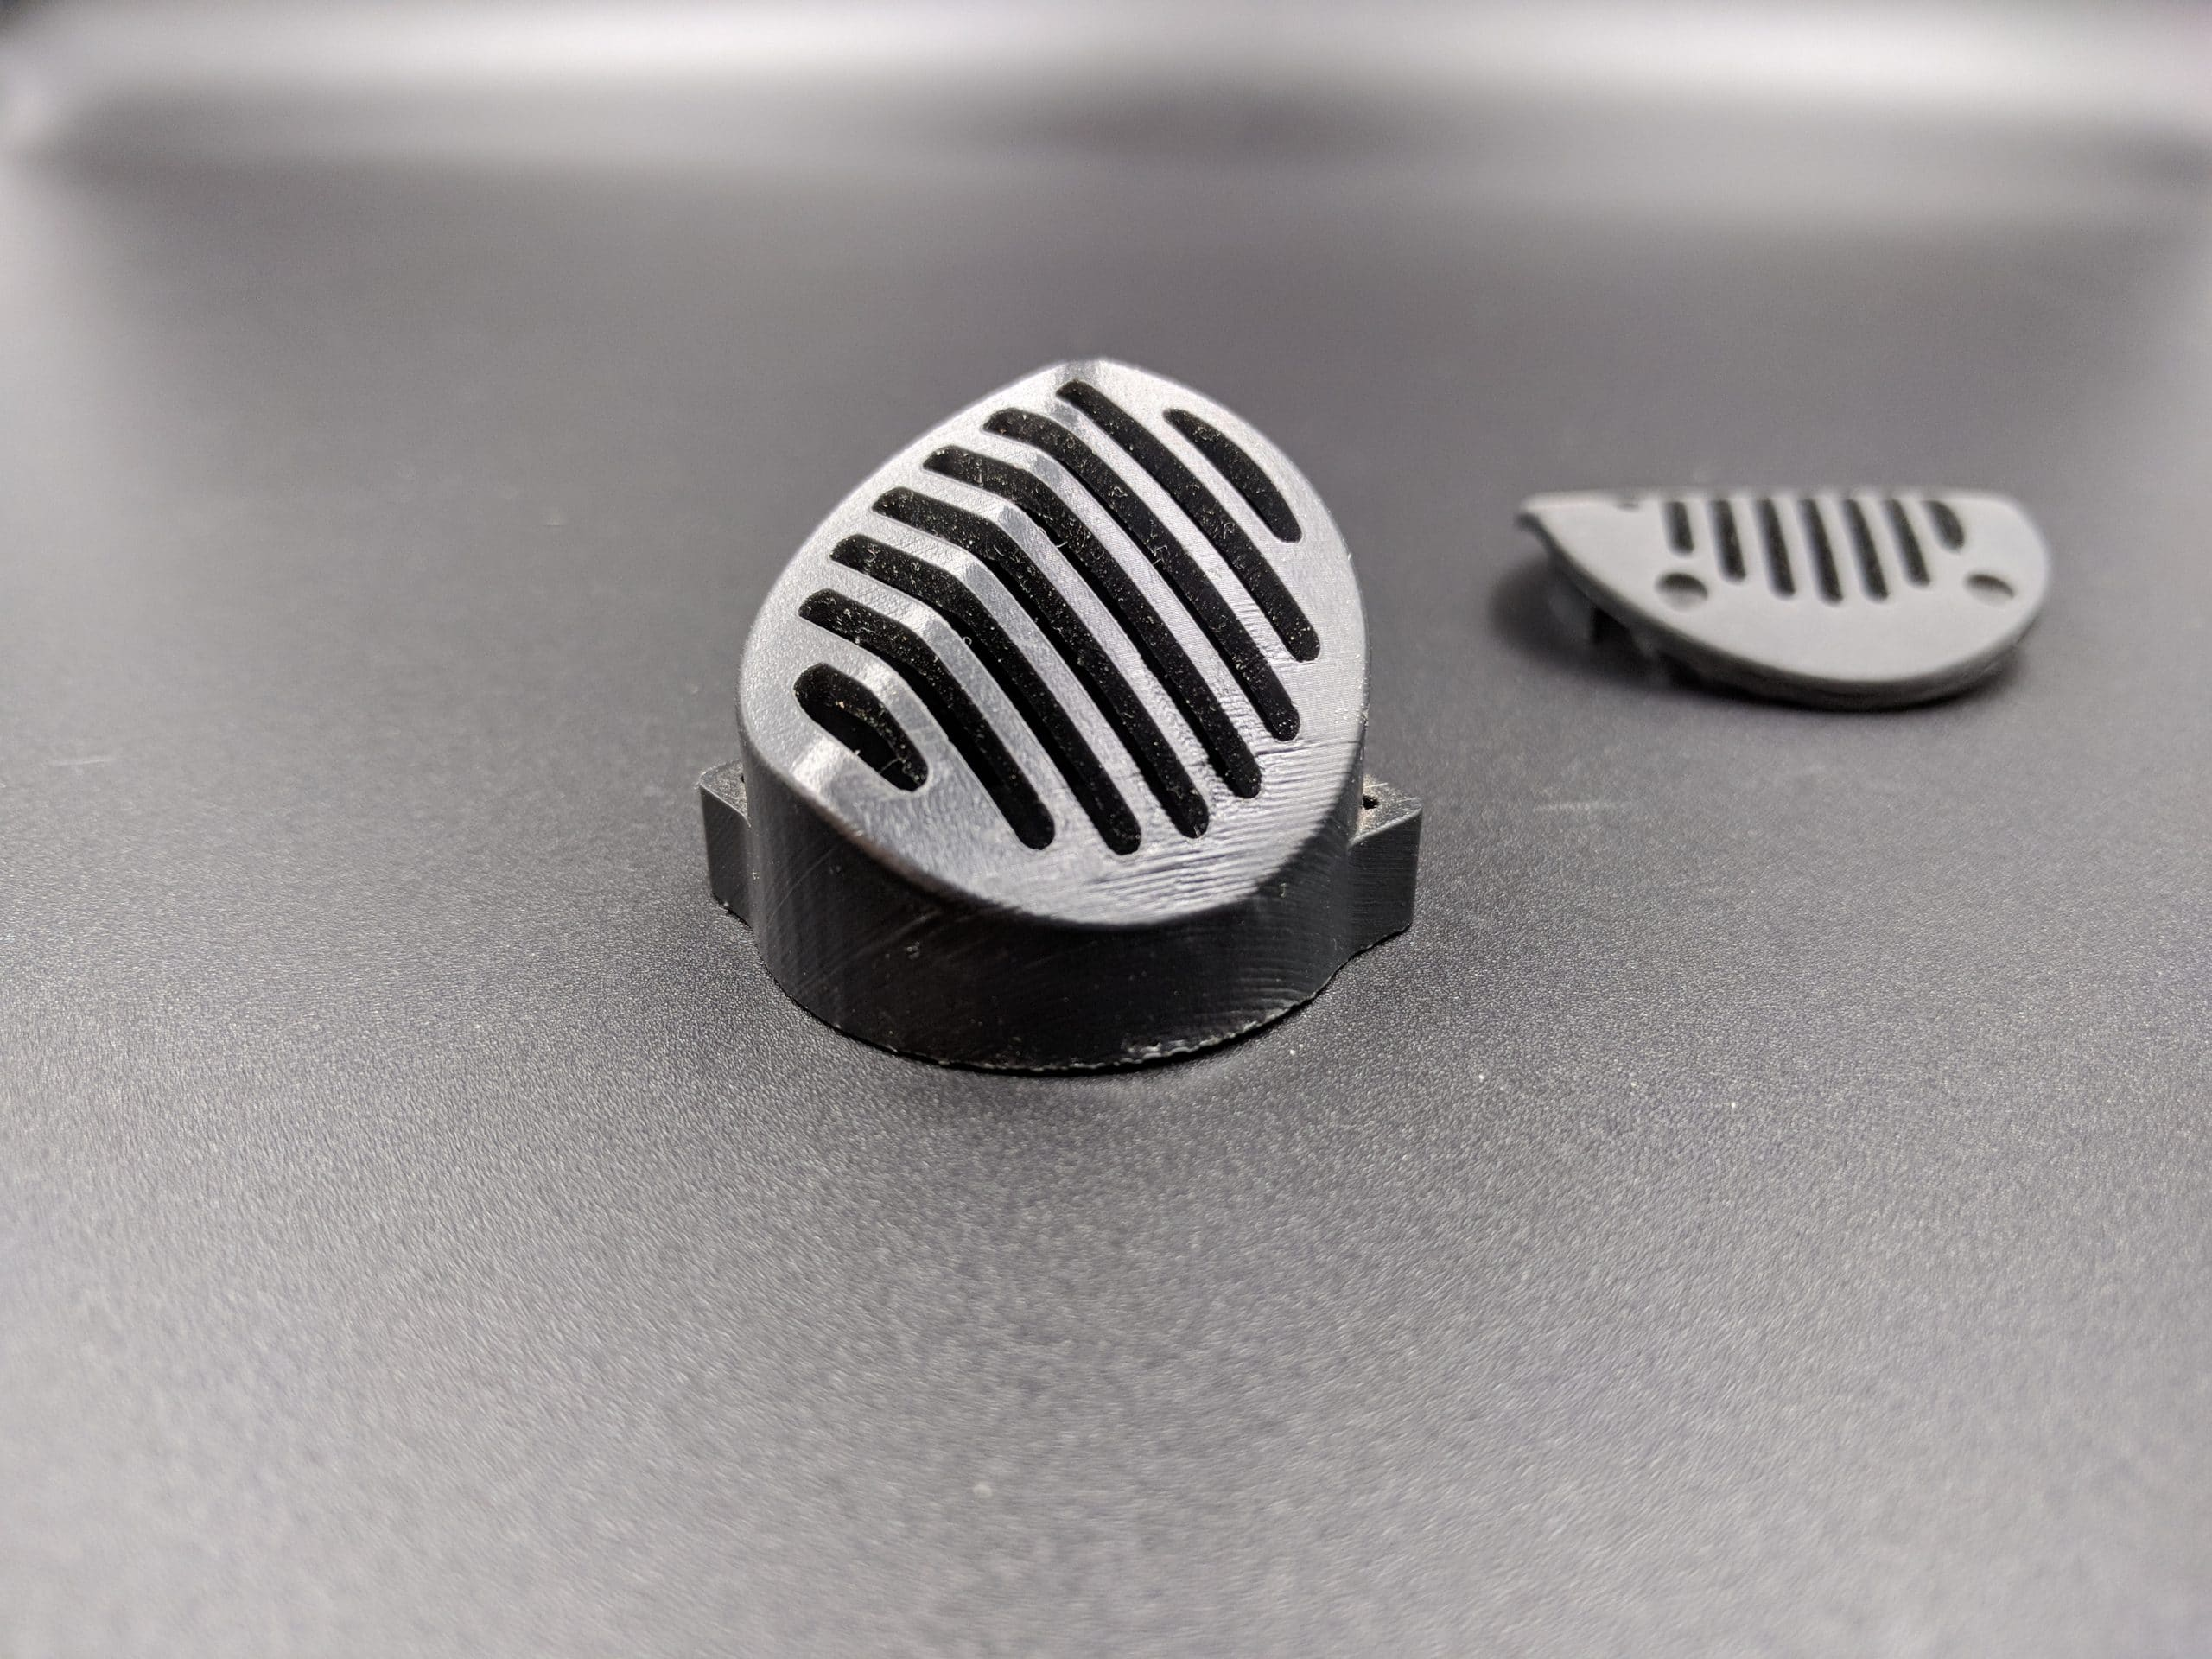 SLA Printed Black acrylic like raw surface